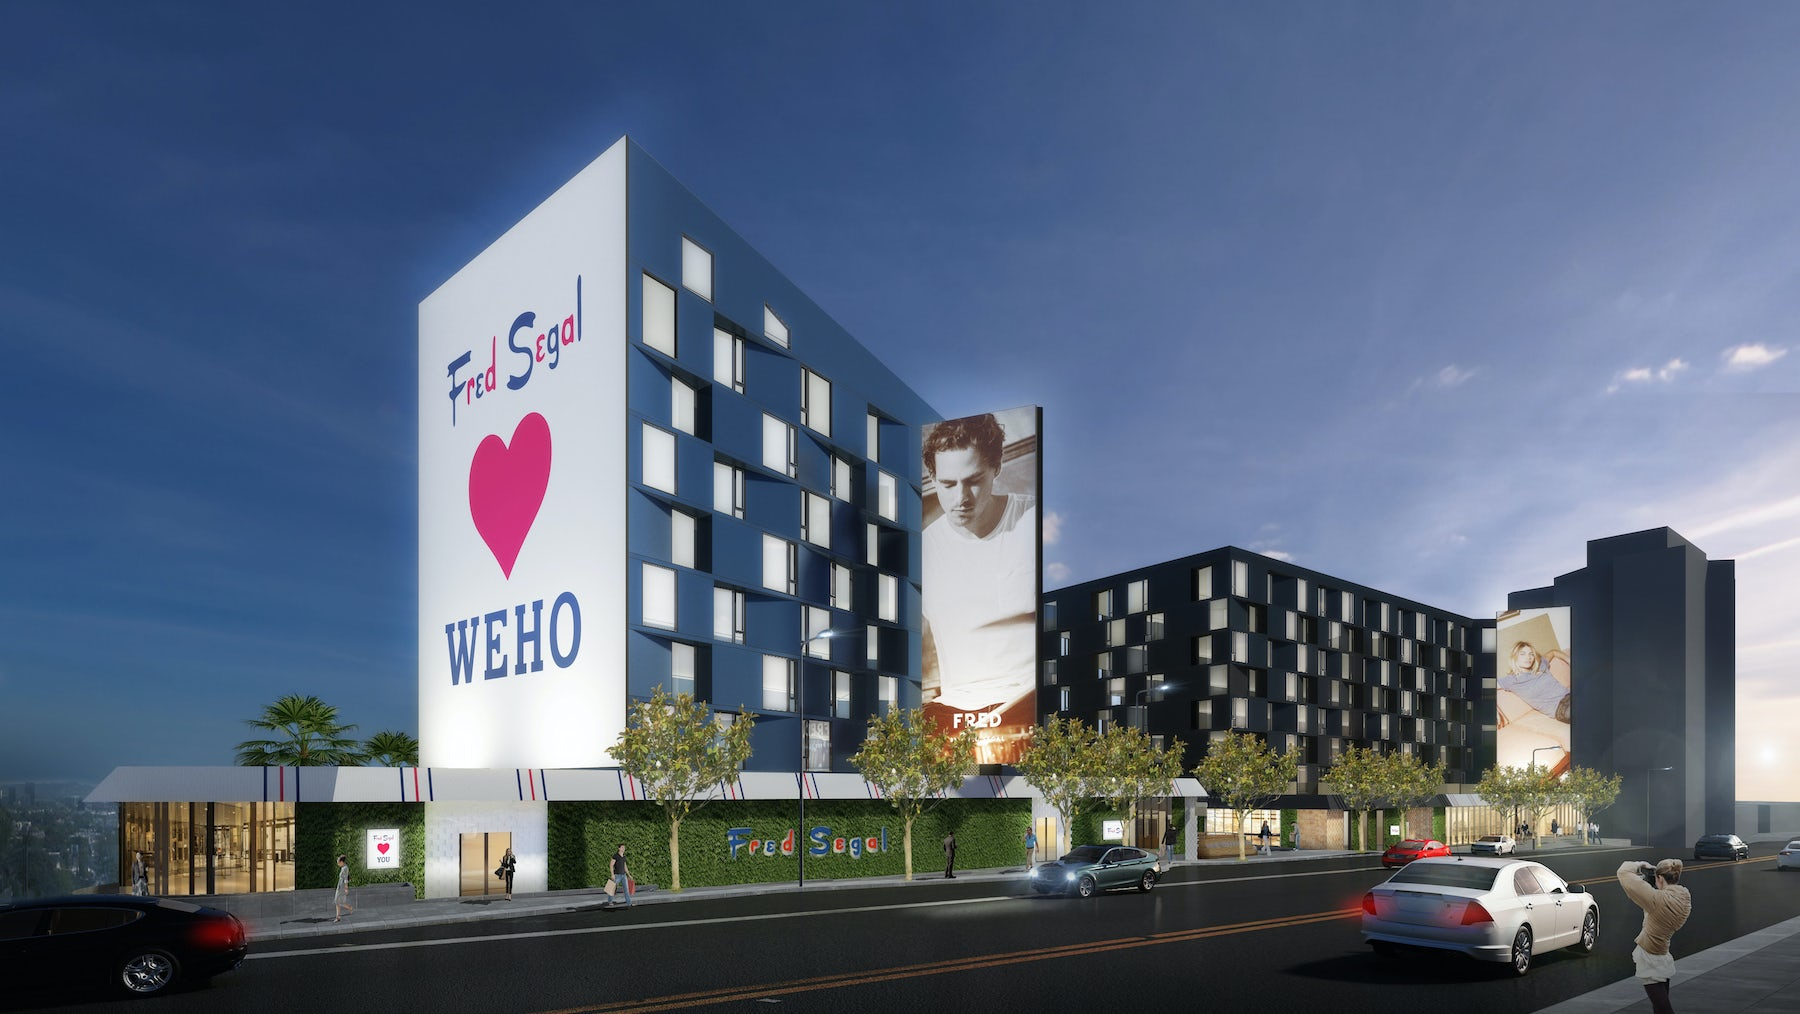 A rendering of the new Fred Segal store in West Hollywood   Source: Courtesy